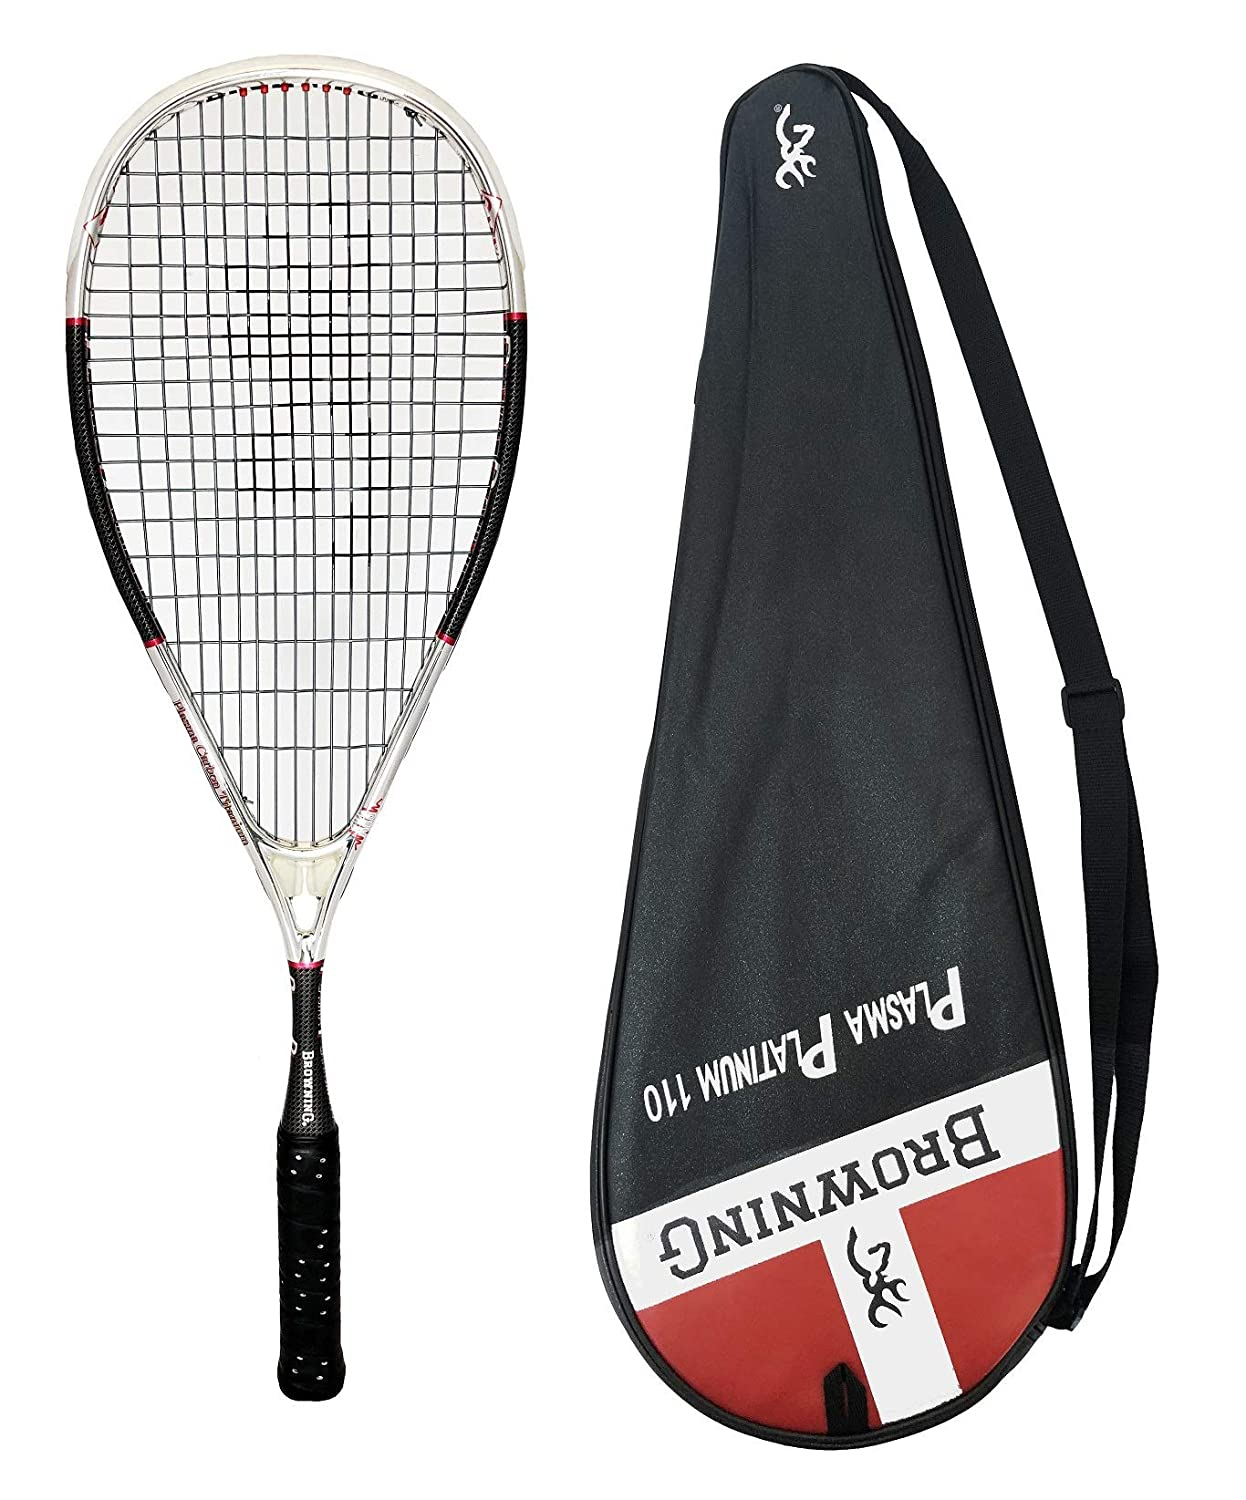 d827a61f4 Browning Plasma Platinum 110 Squash Racket + Cover  Amazon.co.uk  Sports    Outdoors